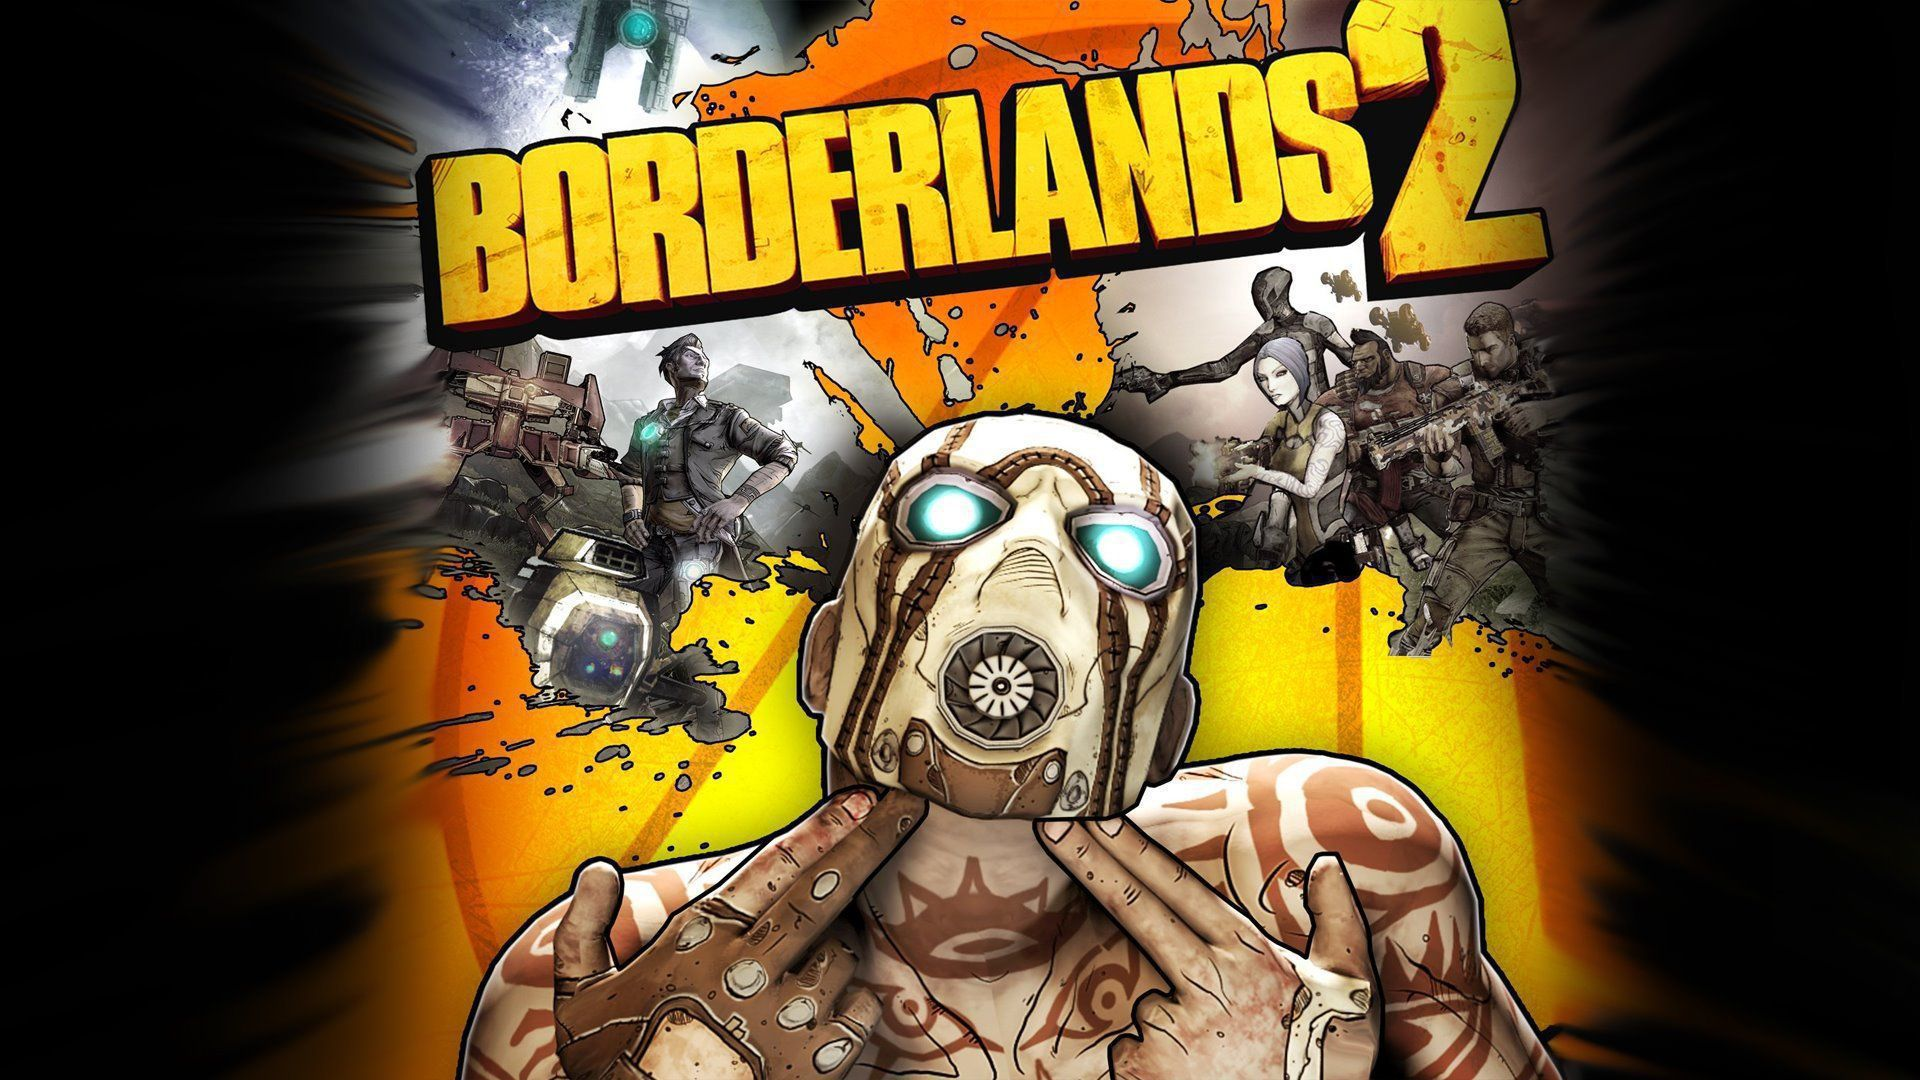 Borderlands 2 Computer Wallpaper